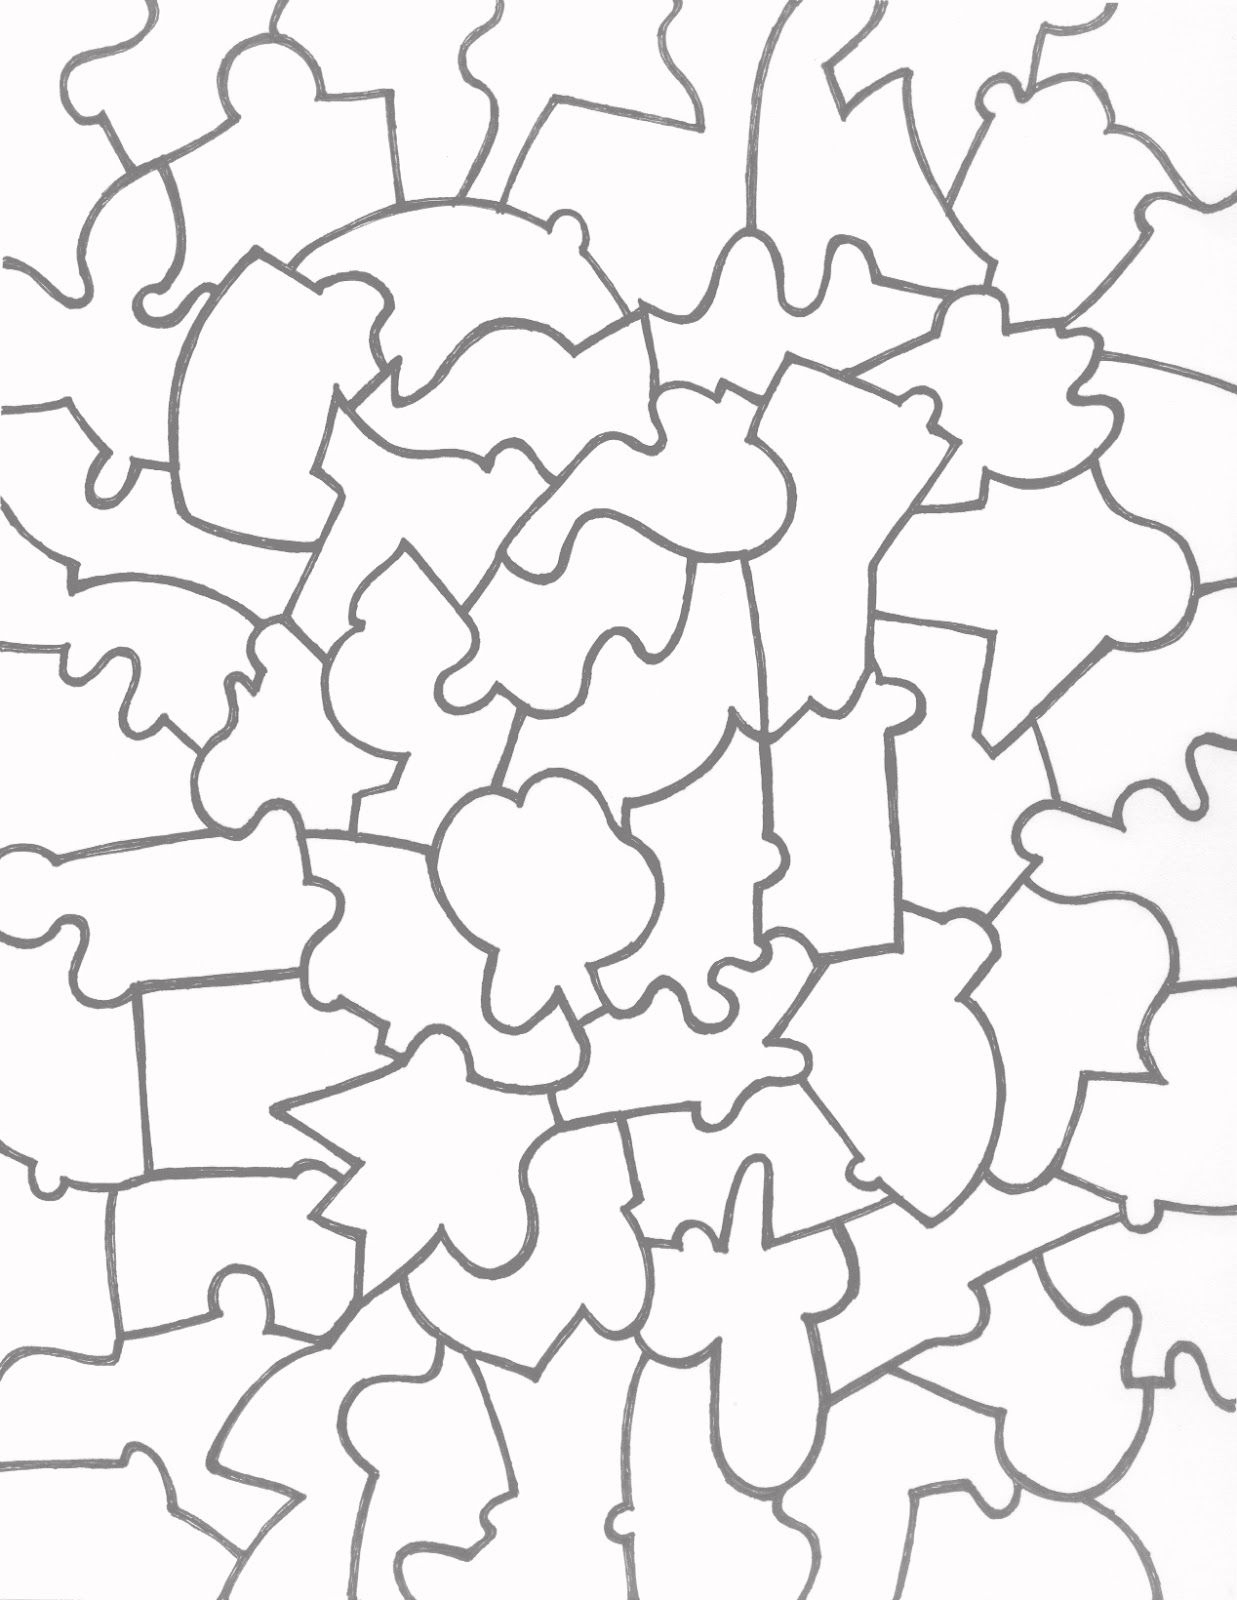 Jigsaw+Puzzle+Template+Printable | Vector | Free Printable Puzzles - Printable Jigsaw Puzzles For Middle School